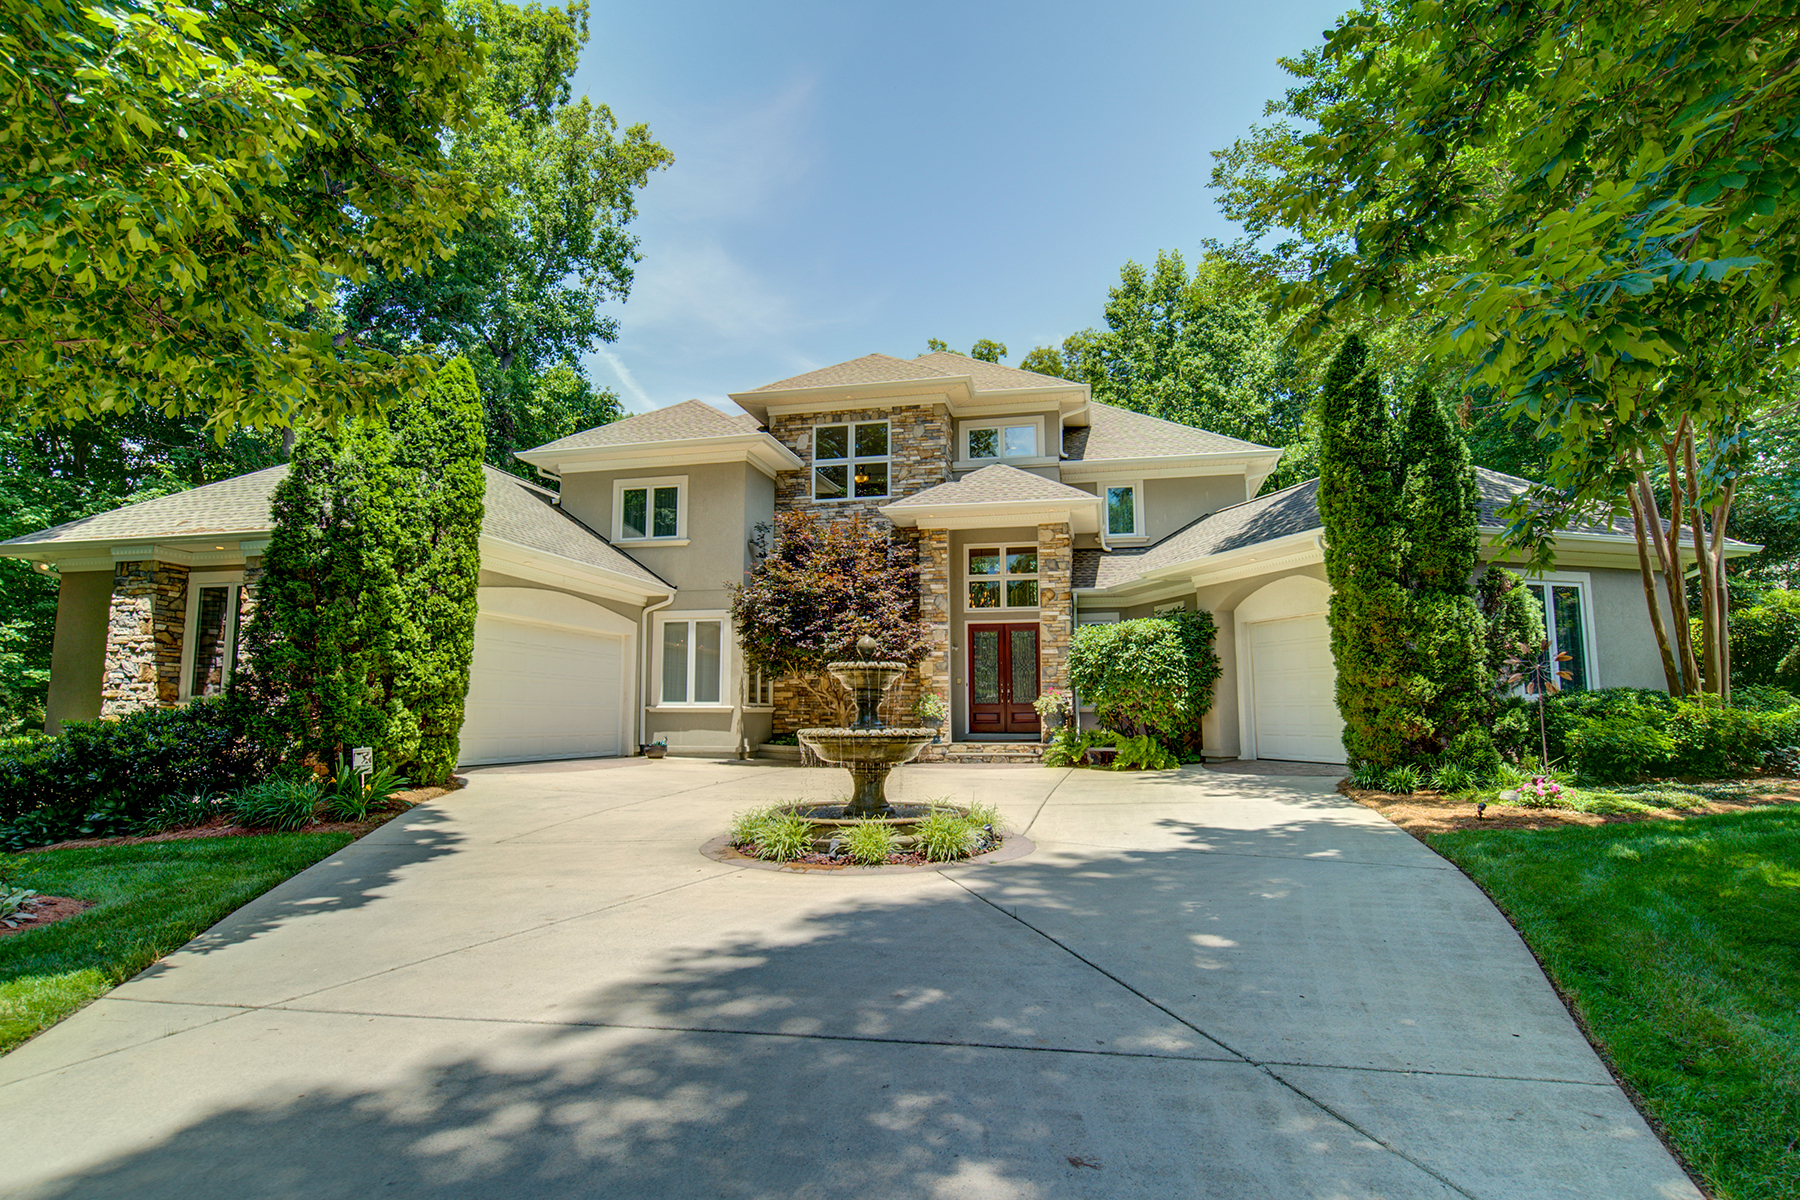 Single Family Home for Active at OVERLOOK 12530 Preservation Pointe Drive Charlotte, North Carolina 28216 United States